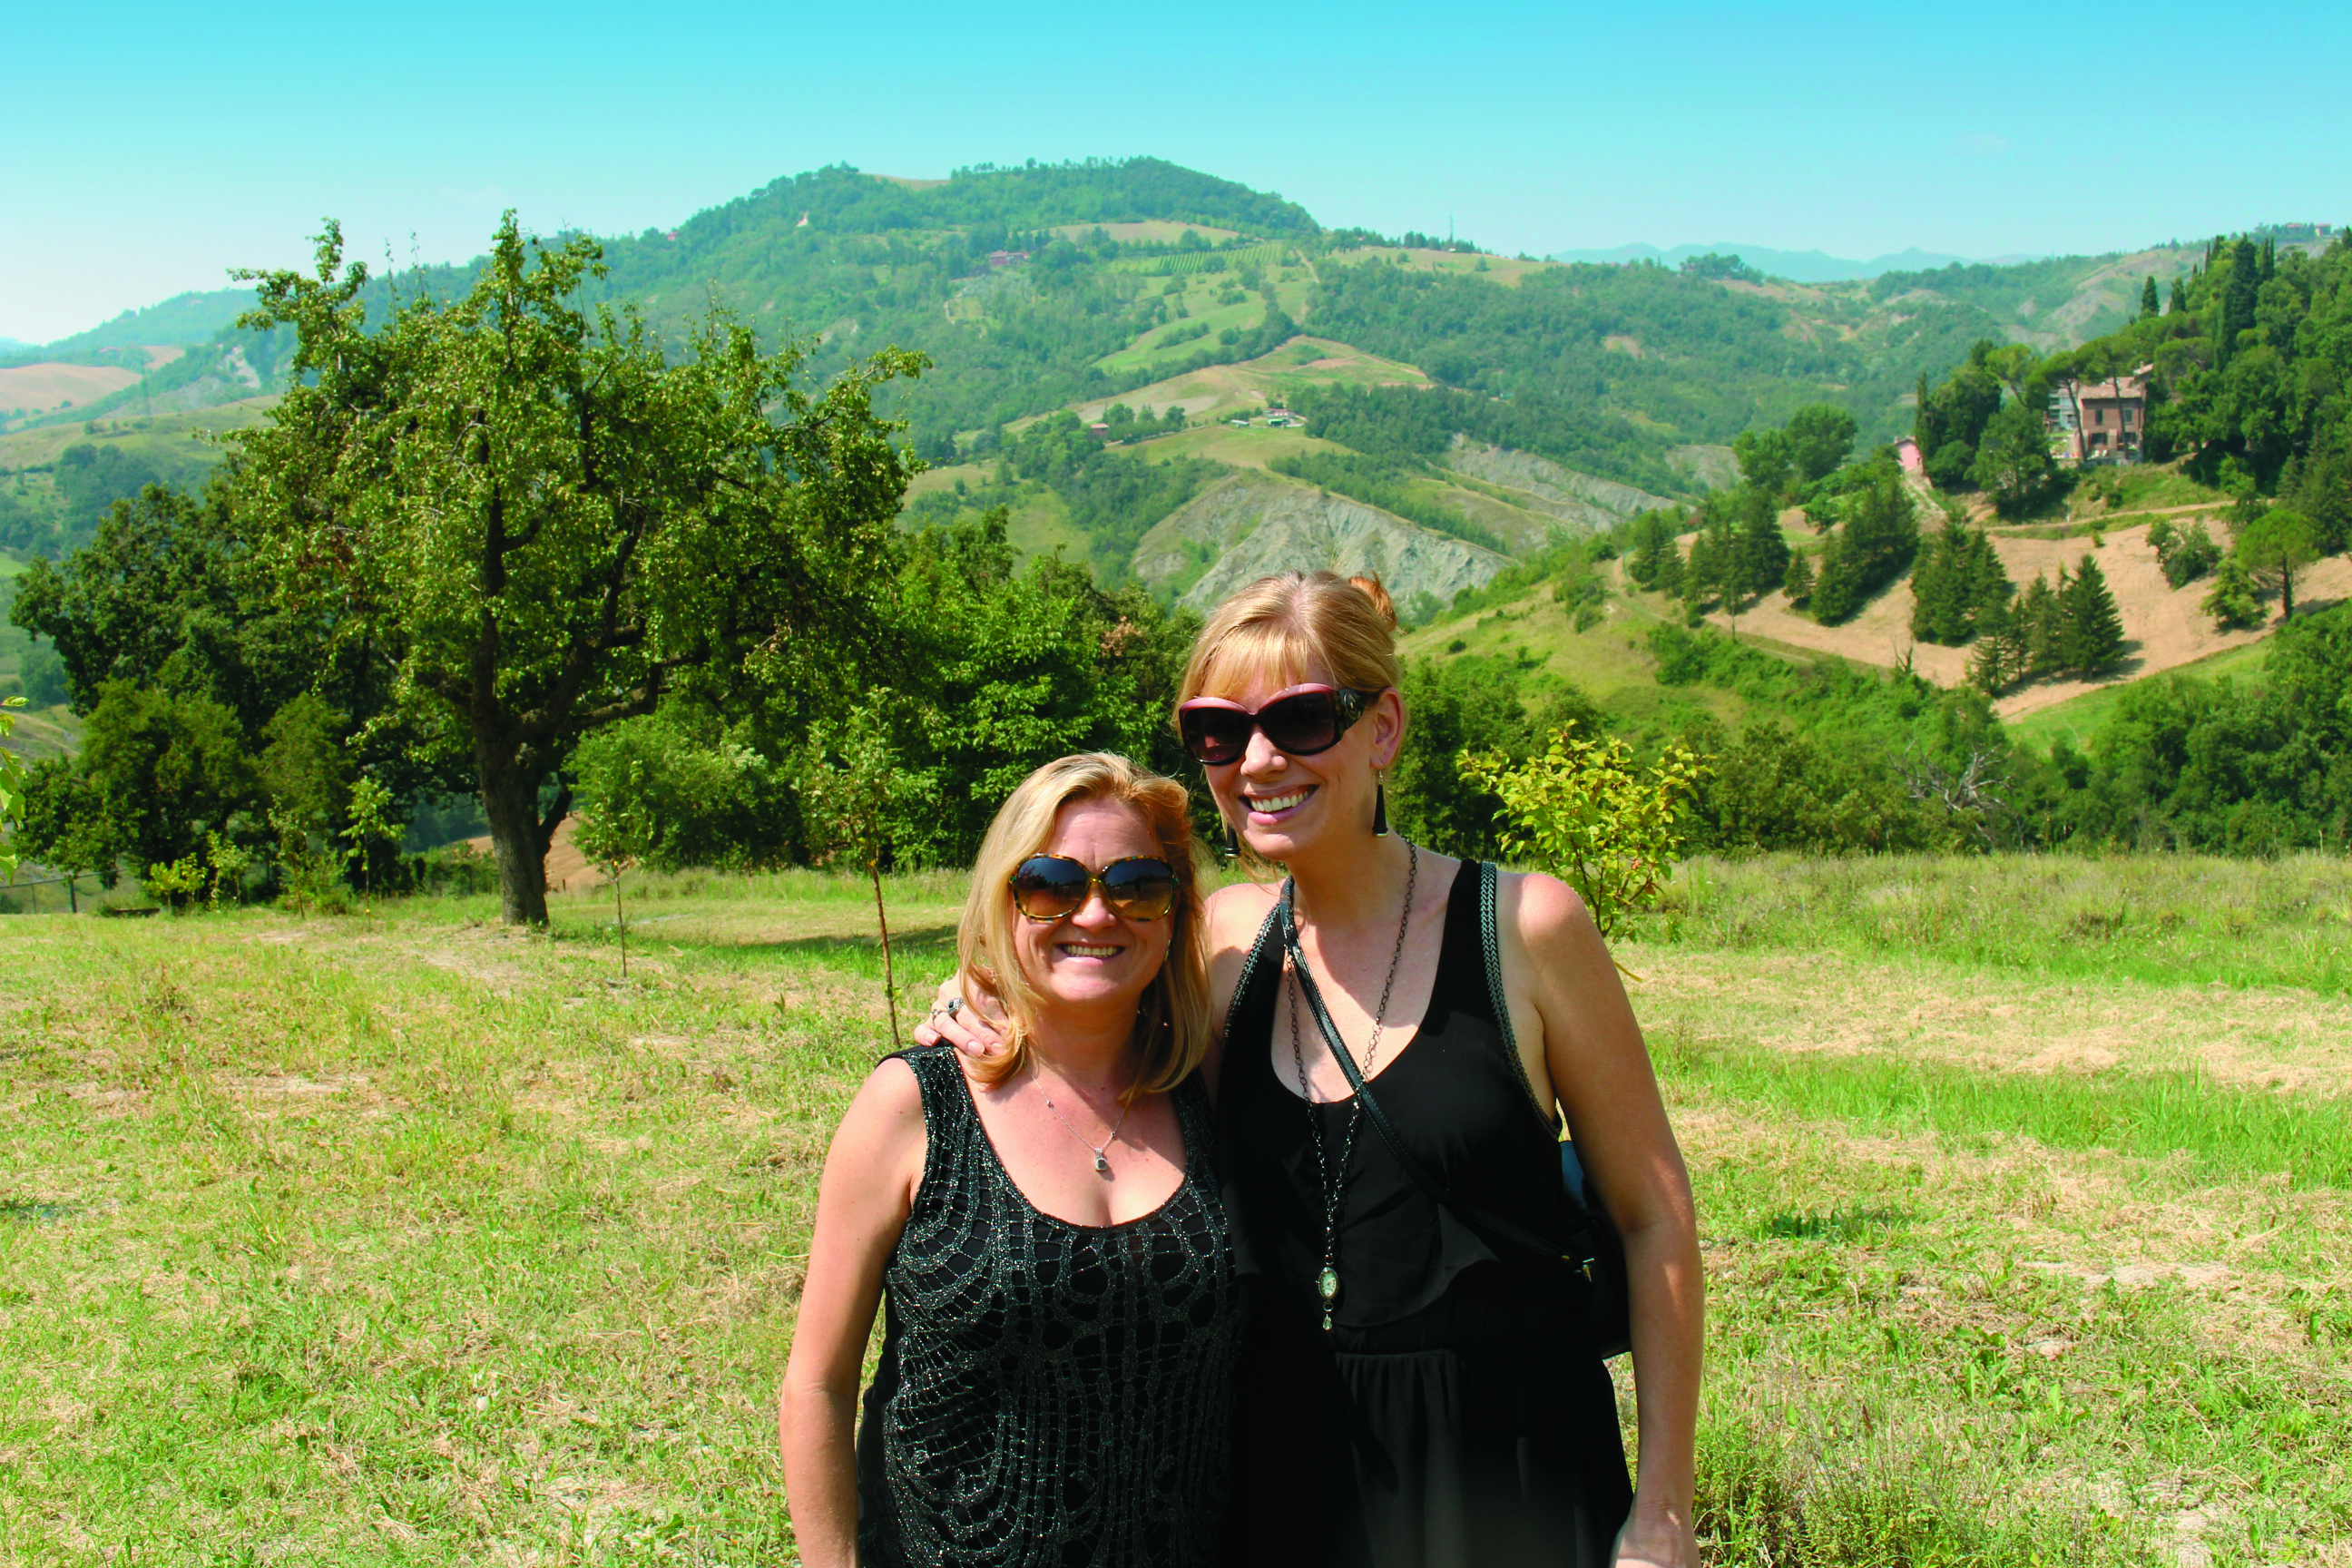 Rebecca Gregory and Jennifer Andrews in Bologna, Italy at OWAY's biodynamic farms.